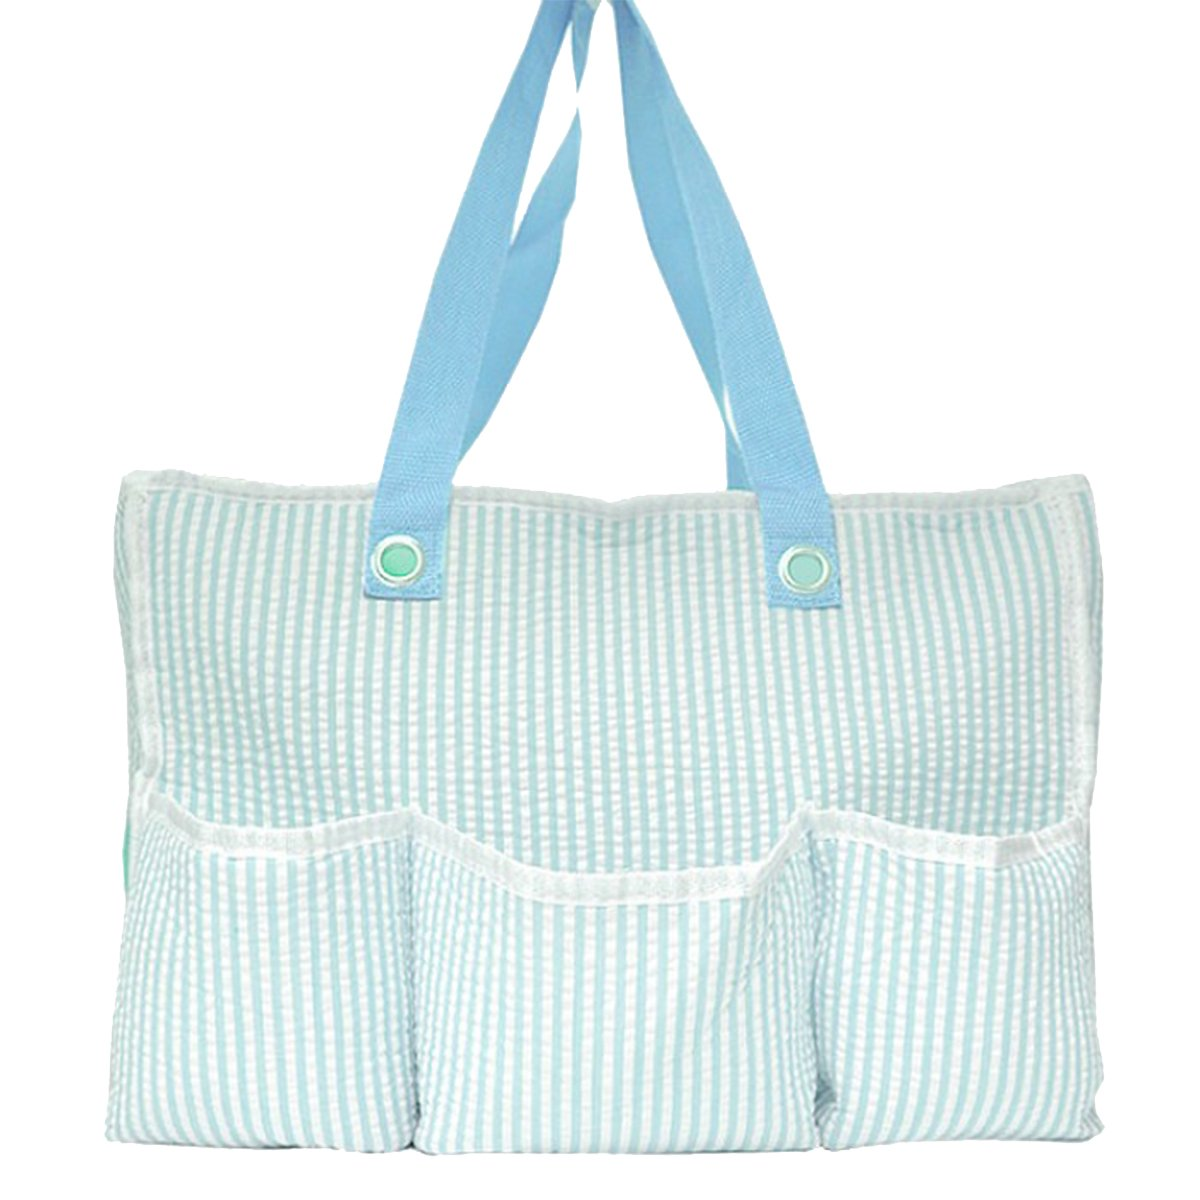 Trendy Collections Baby Blue Seersucker Diaper Bag, 16 x 11.5 Inches, Baby Blue